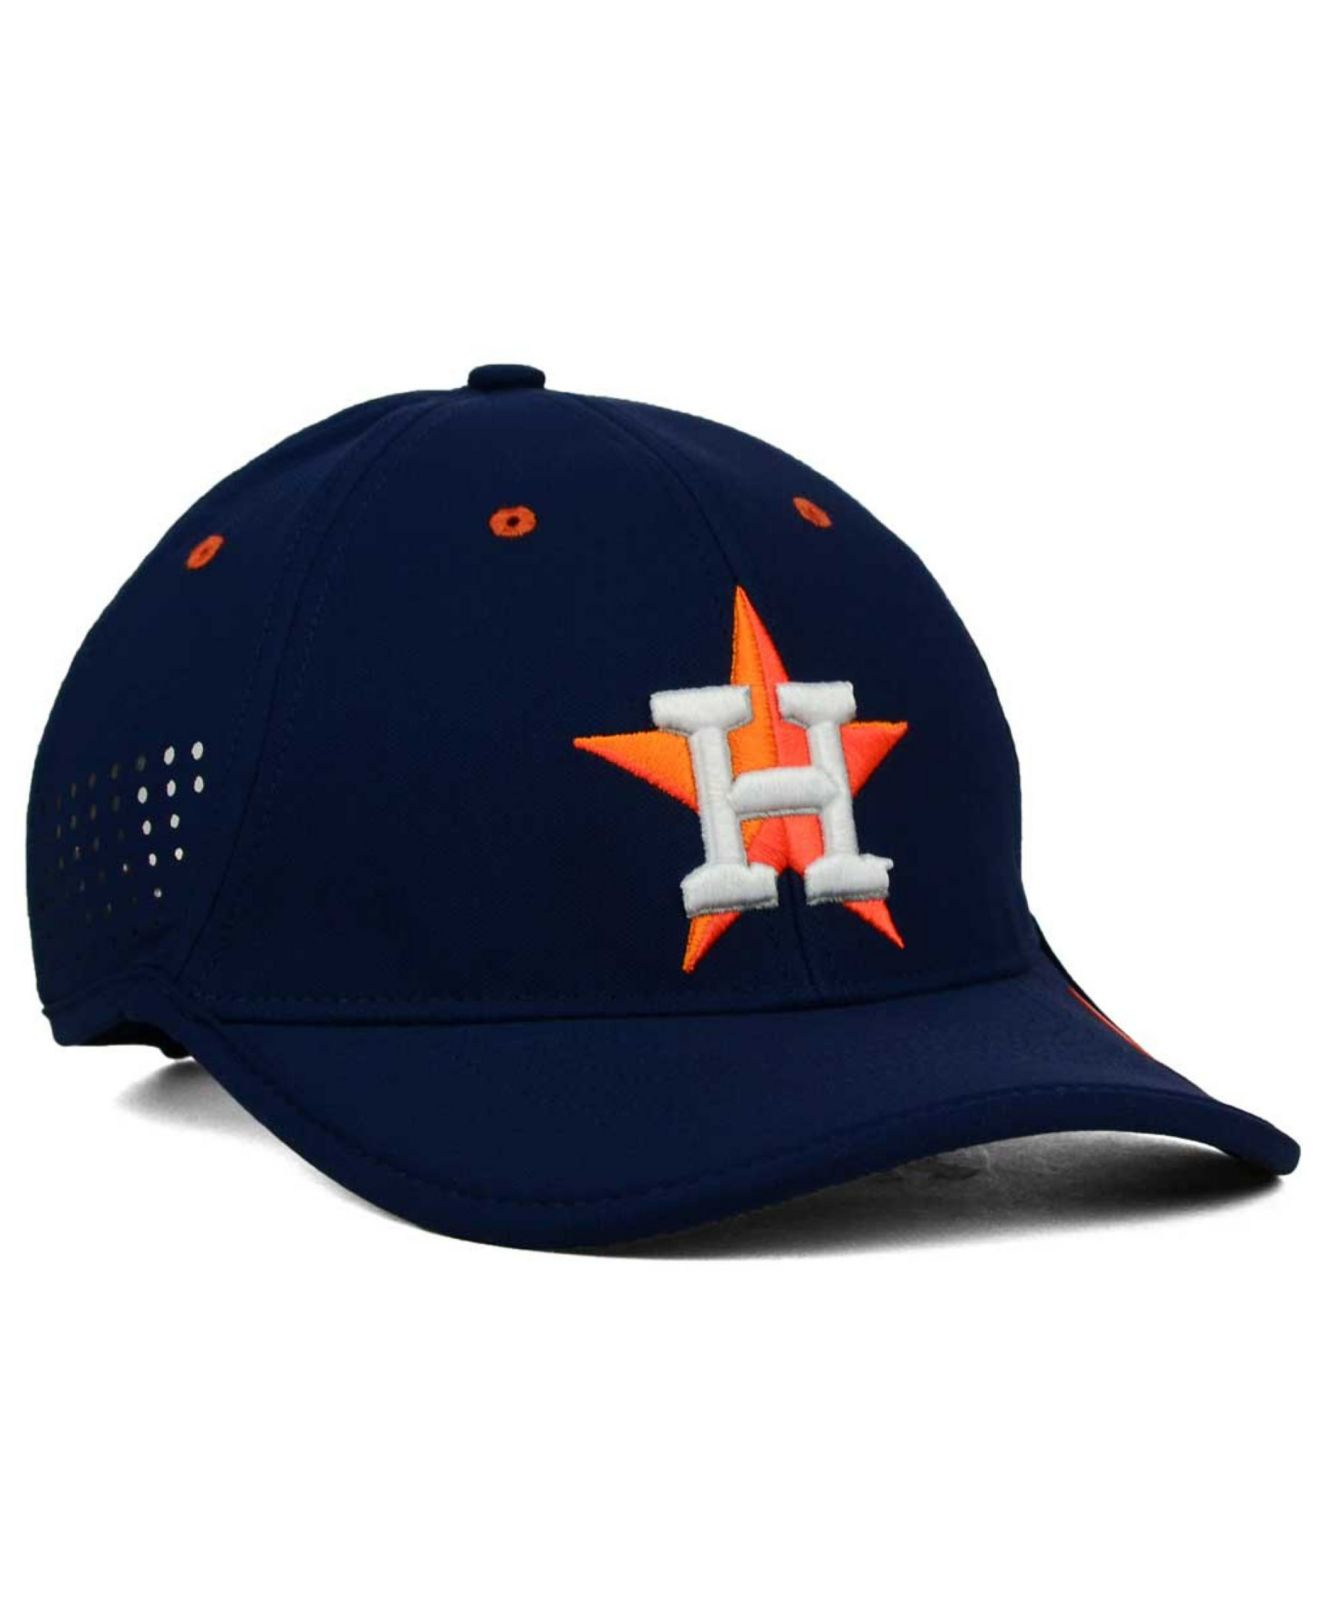 Lyst - Nike Houston Astros Vapor Swoosh Adjustable Cap in Blue for Men c6b87317ab9